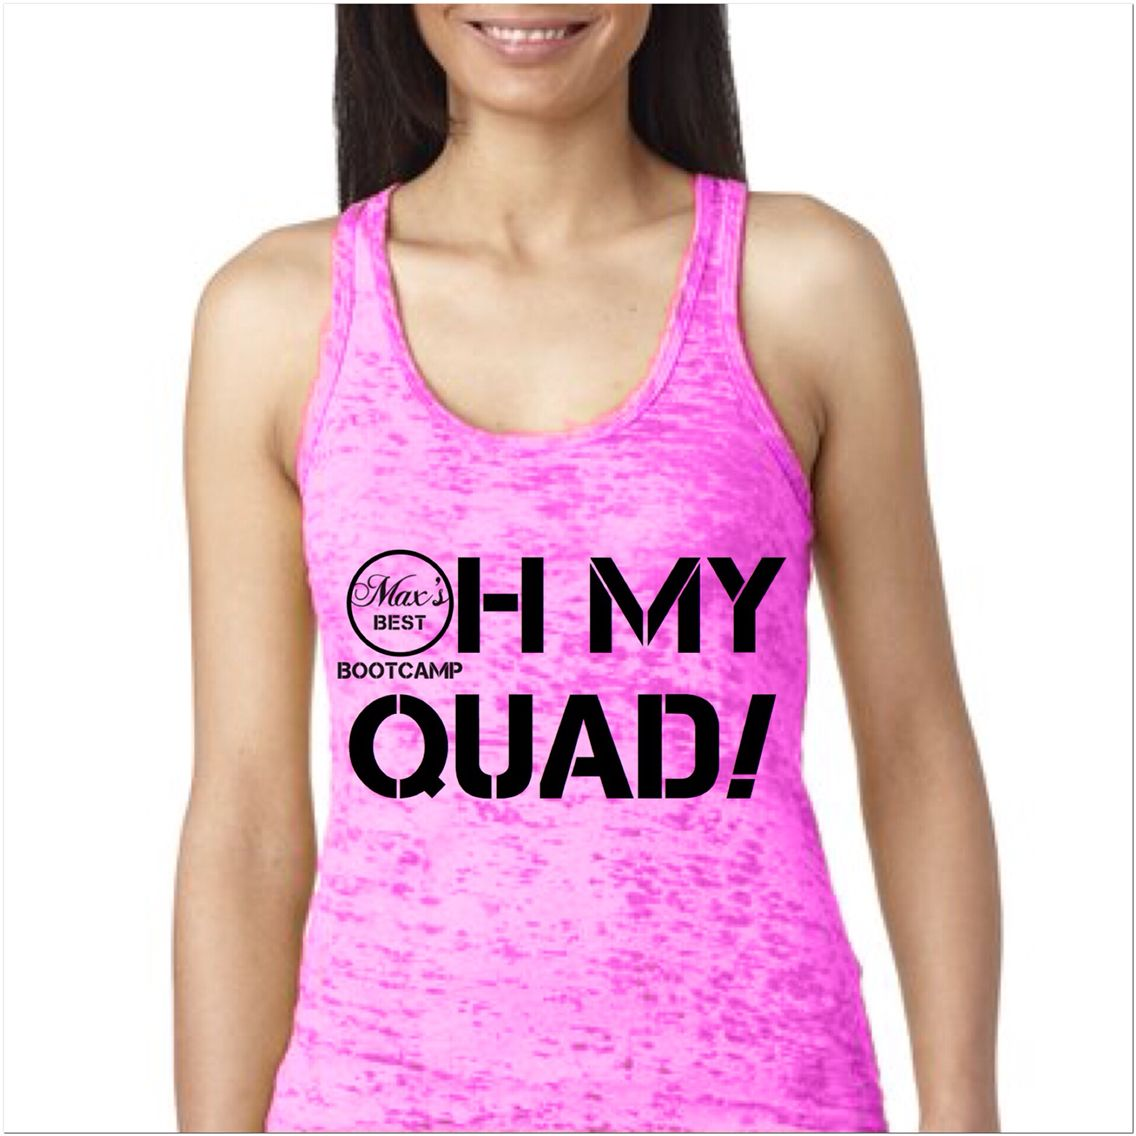 New tank design, coming soon - Oh My Quad! #fitness #gymtank #style